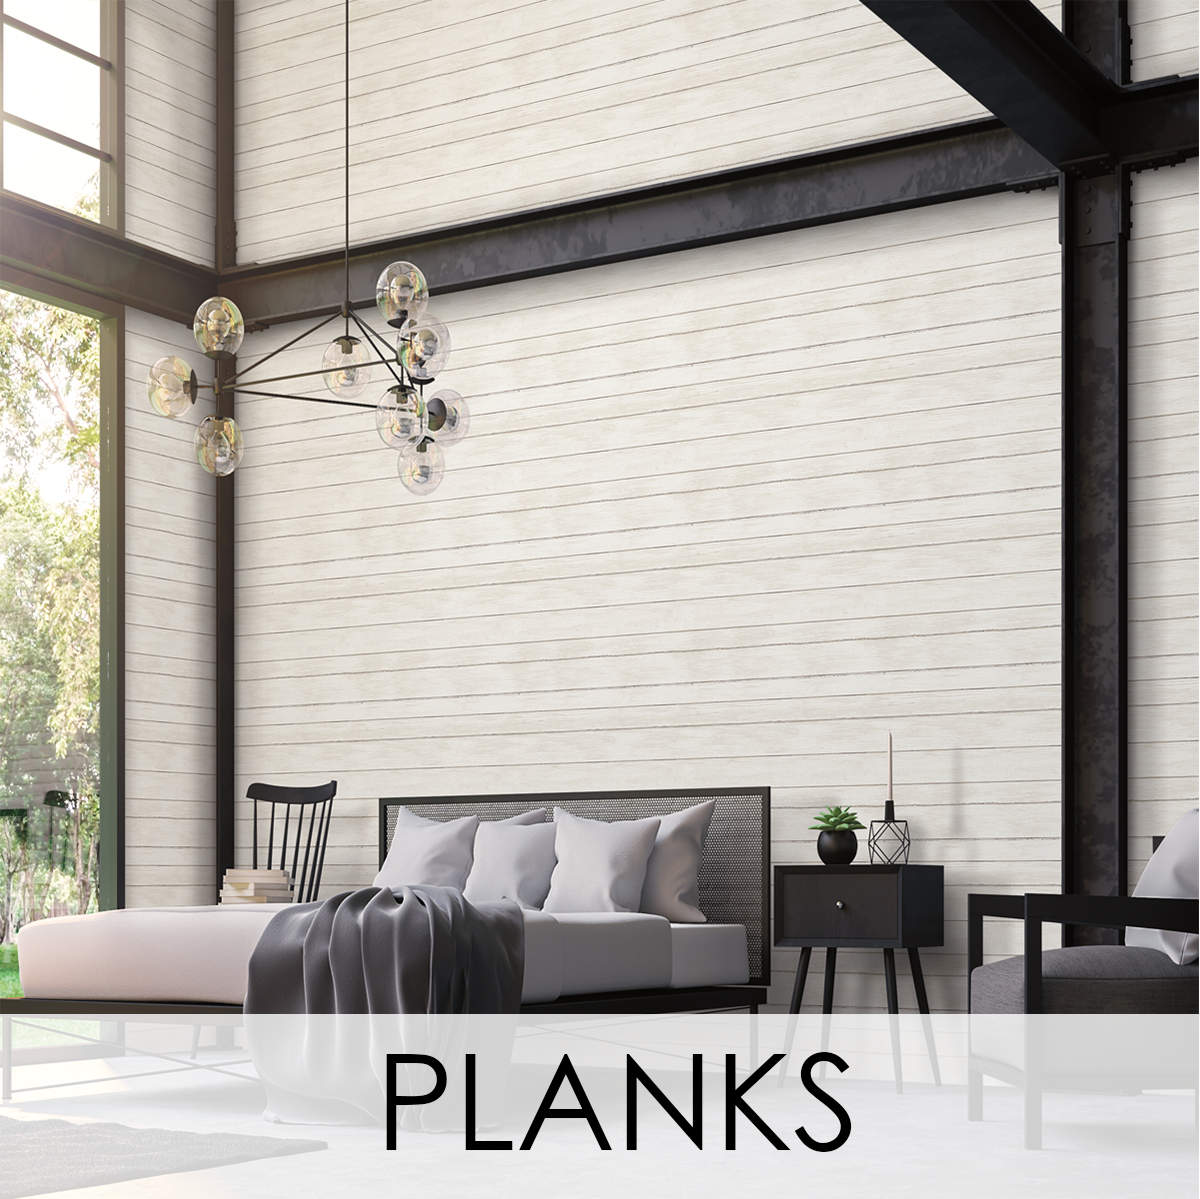 Planks Wallcovering from LEVEY